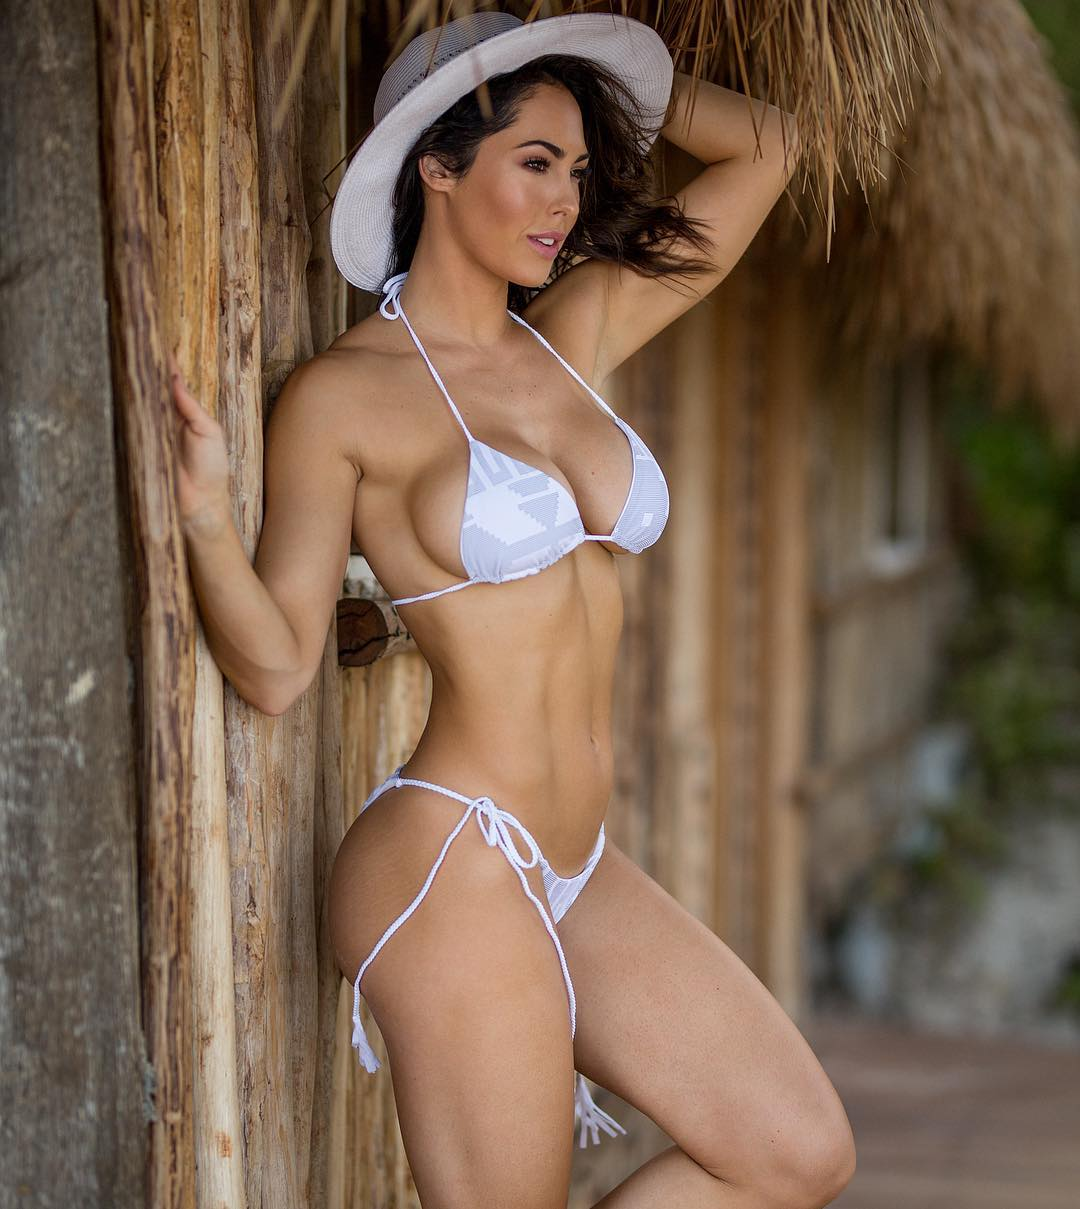 Hope Beel naked 577